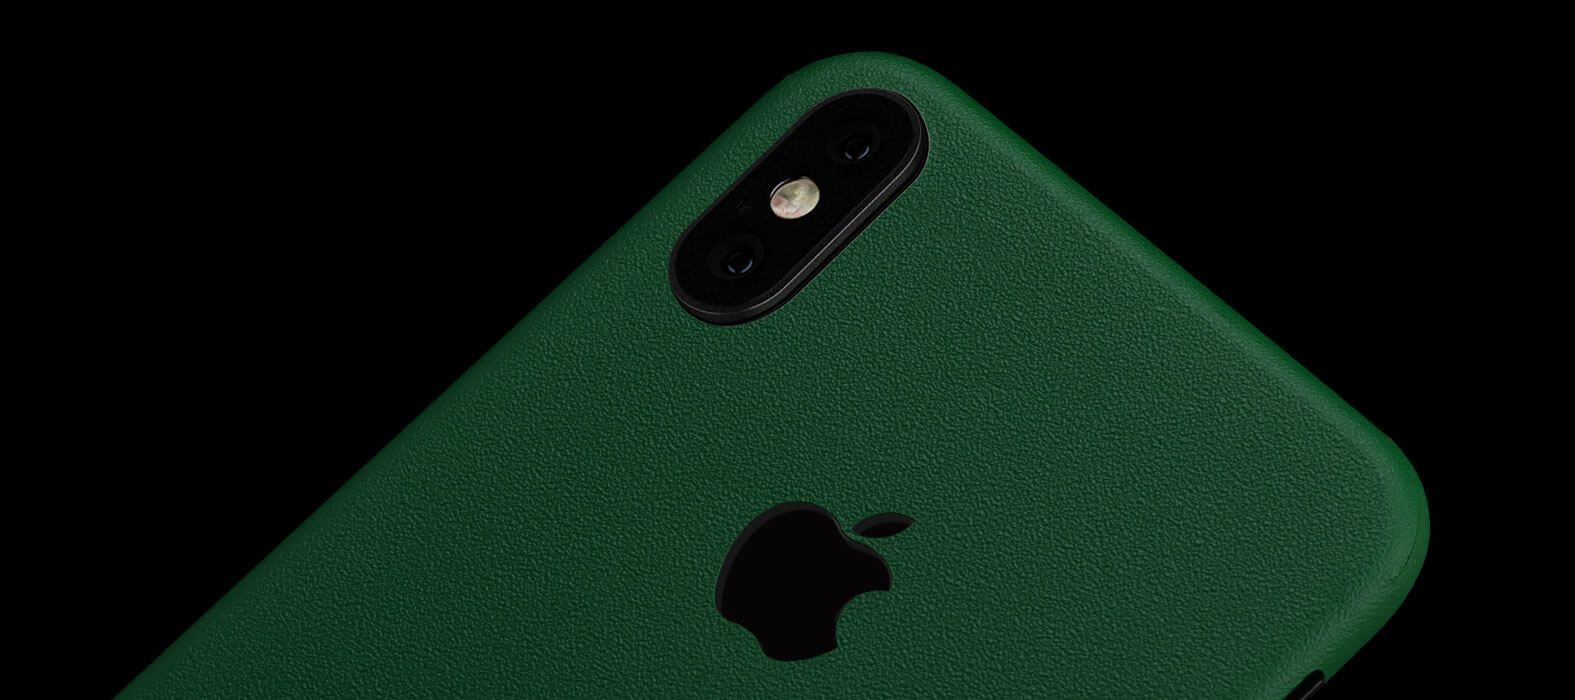 iPhone X Skins, Wraps & decals - Sandstone Green